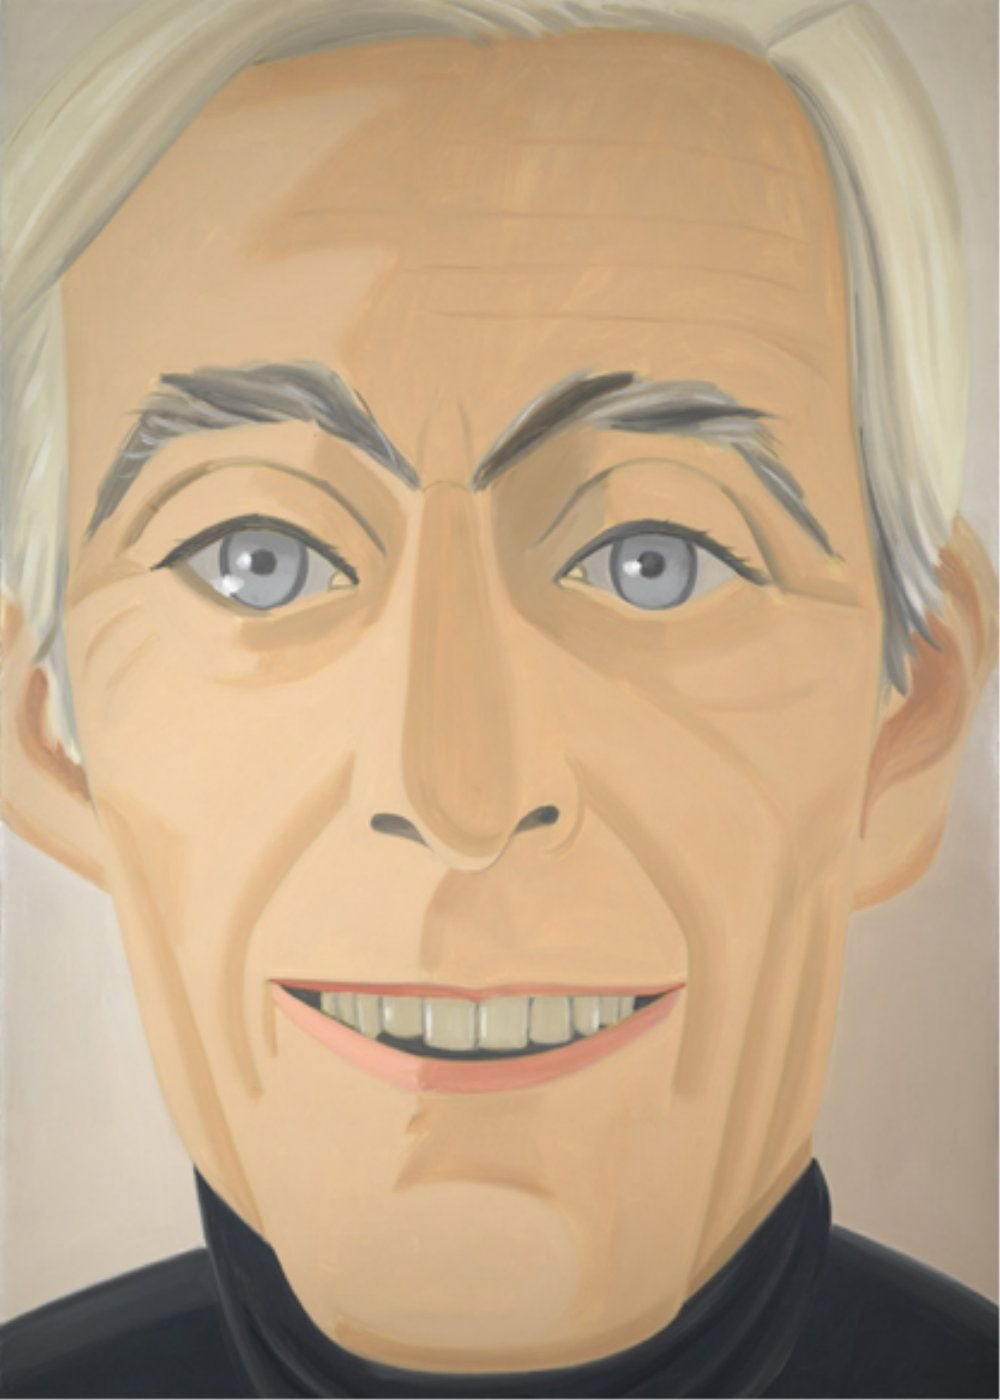 Alex Katz SelfPortrait  Art Portraits  Pinterest  Alex katz